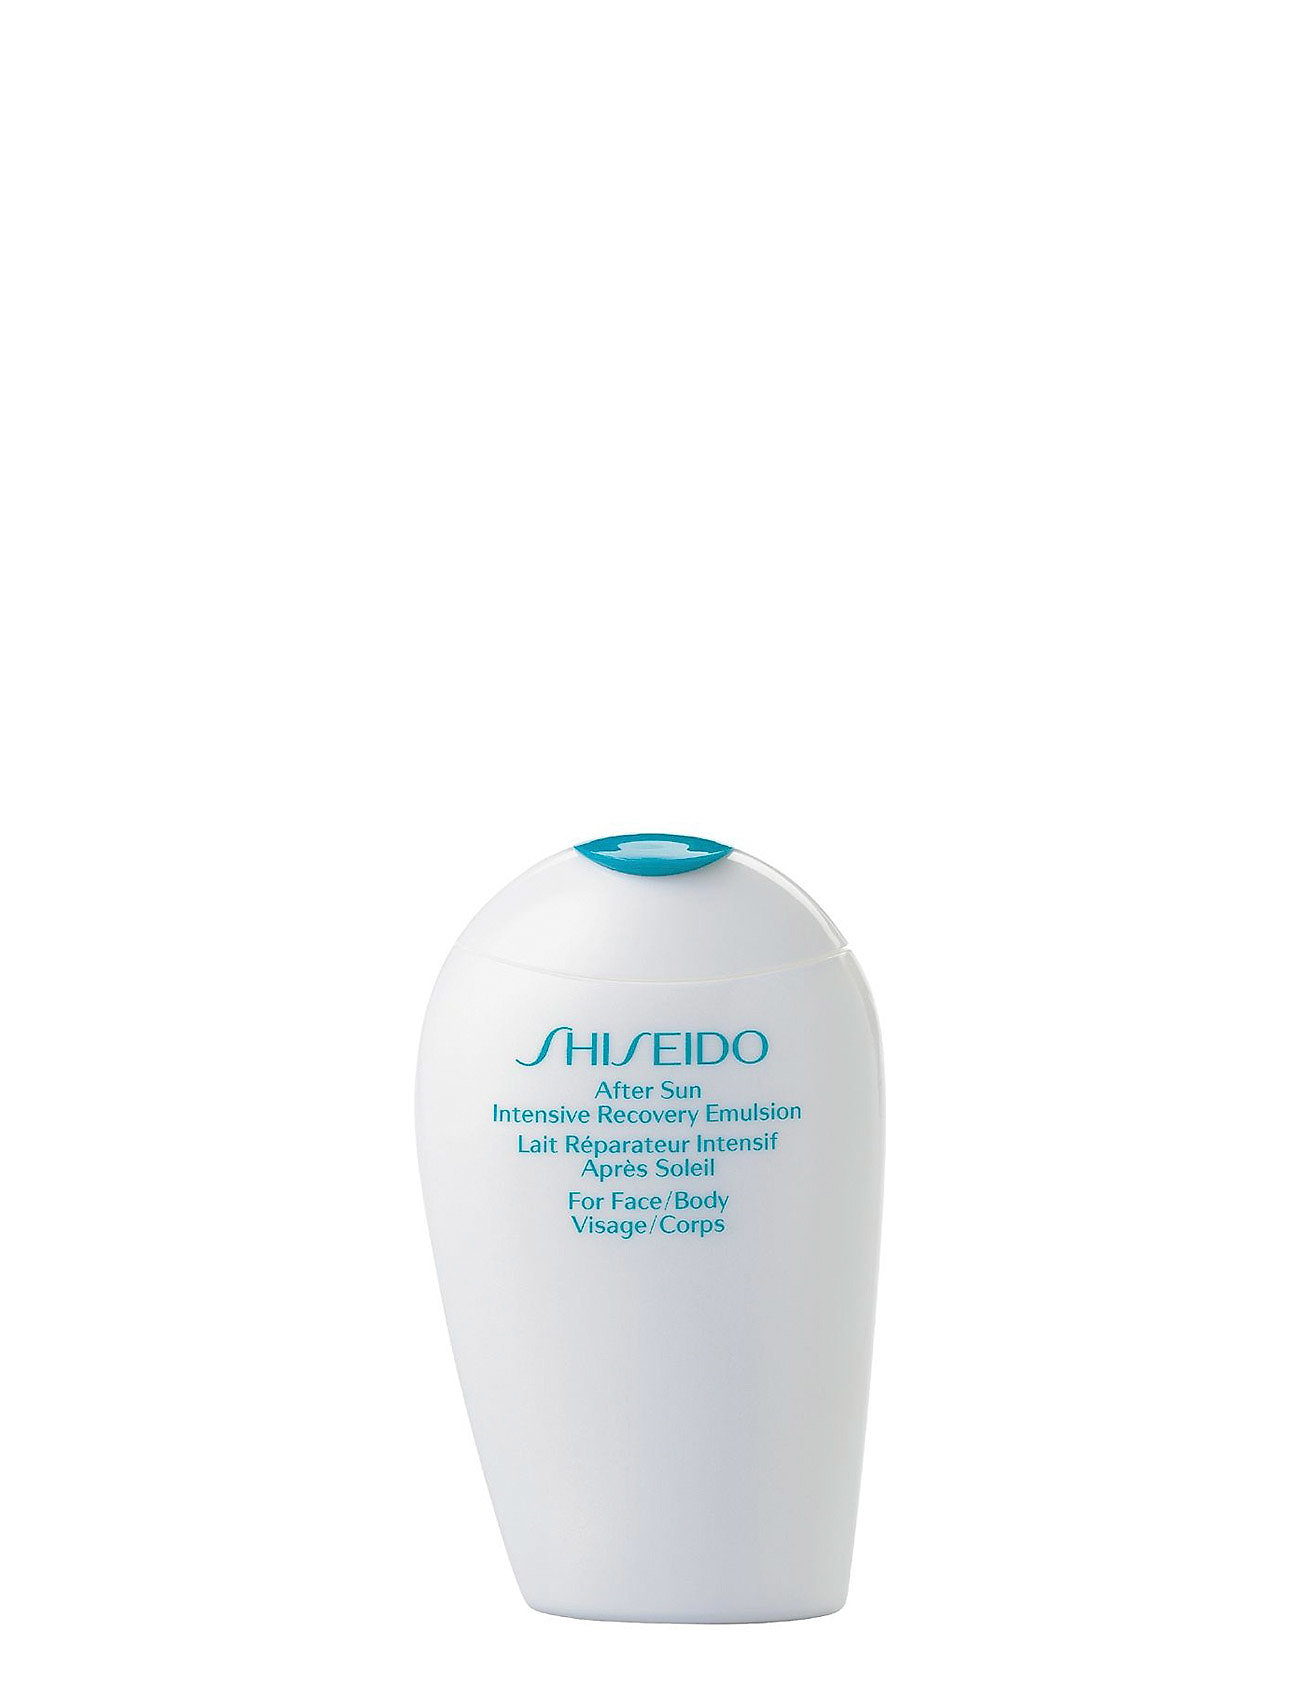 Image of After Sun Intensive Recovery Emulsion Beauty MEN Skin Care Sun Products After Sun Care Nude Shiseido (3228189531)